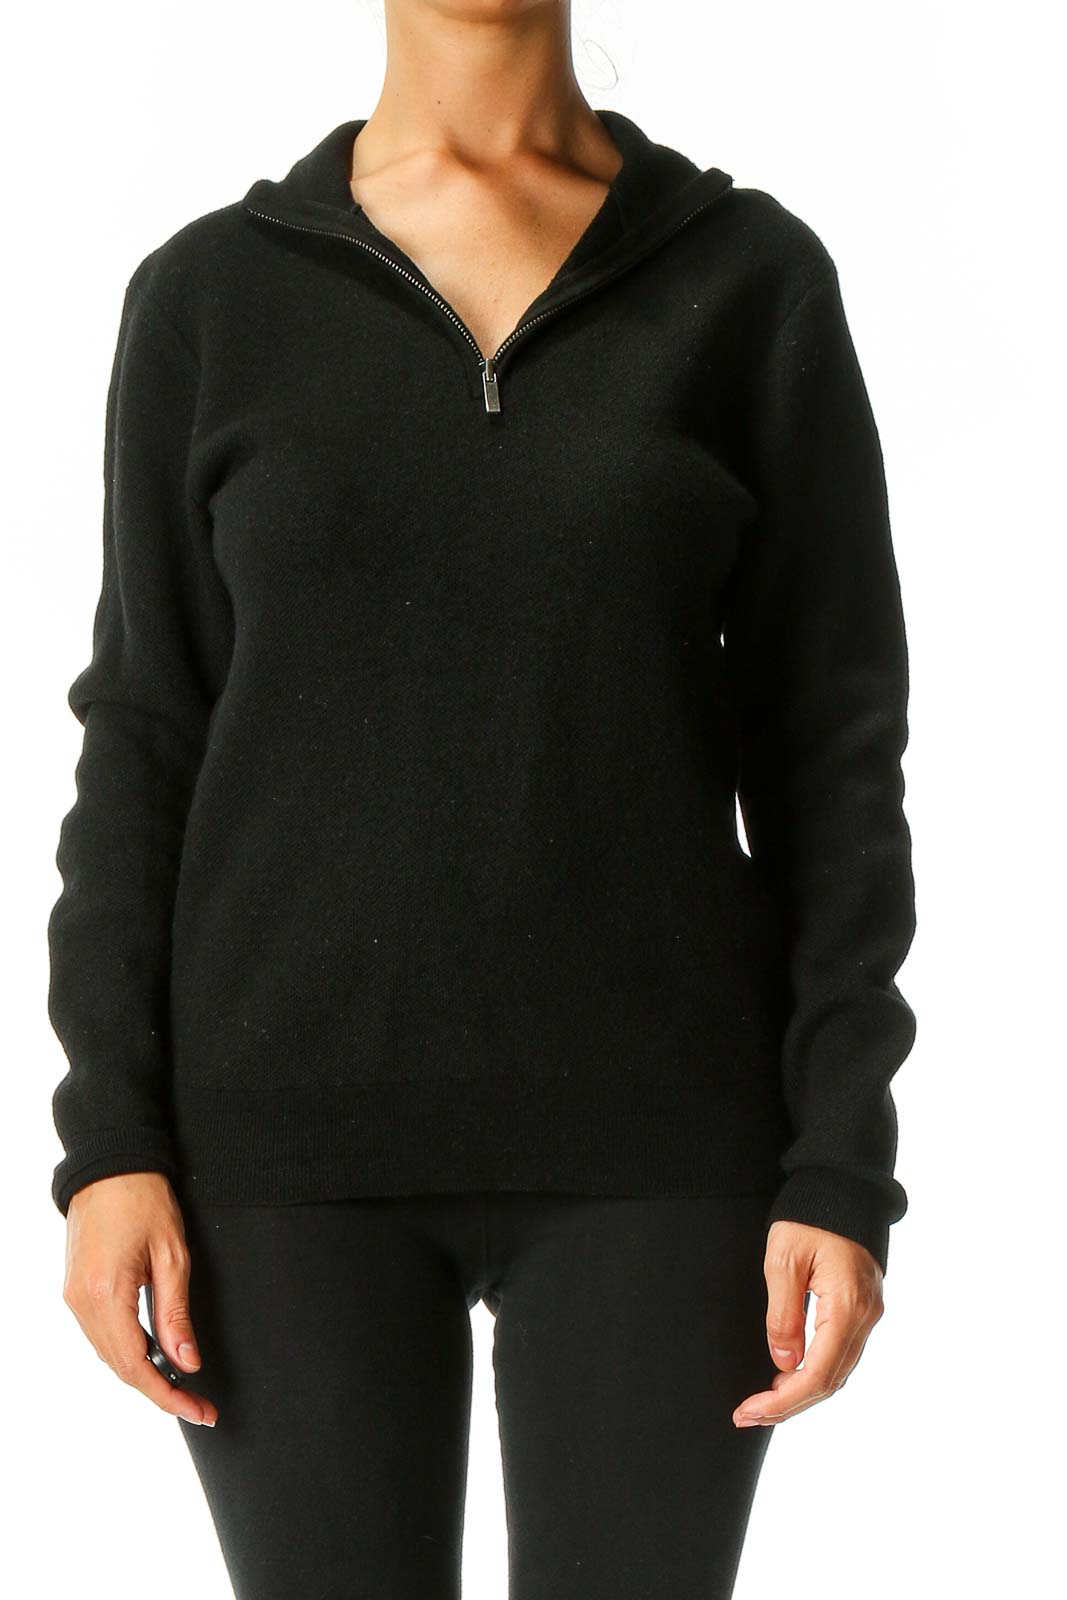 Black Solid Sweater Front